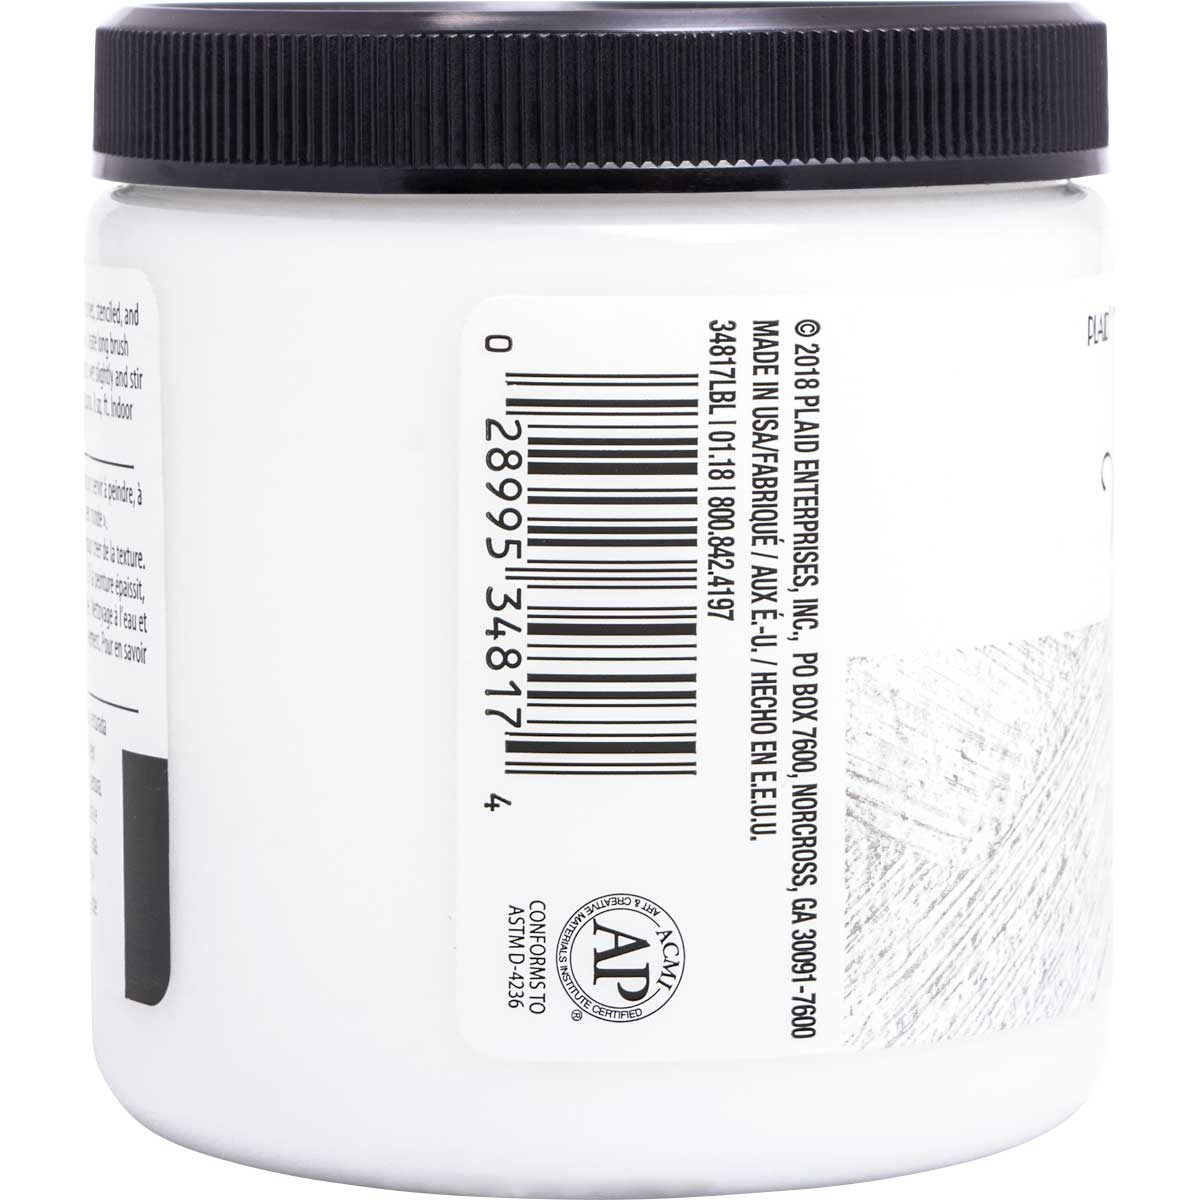 FolkArt ® Home Decor ® Texture Chalk™ - Whisper White, 8 oz.